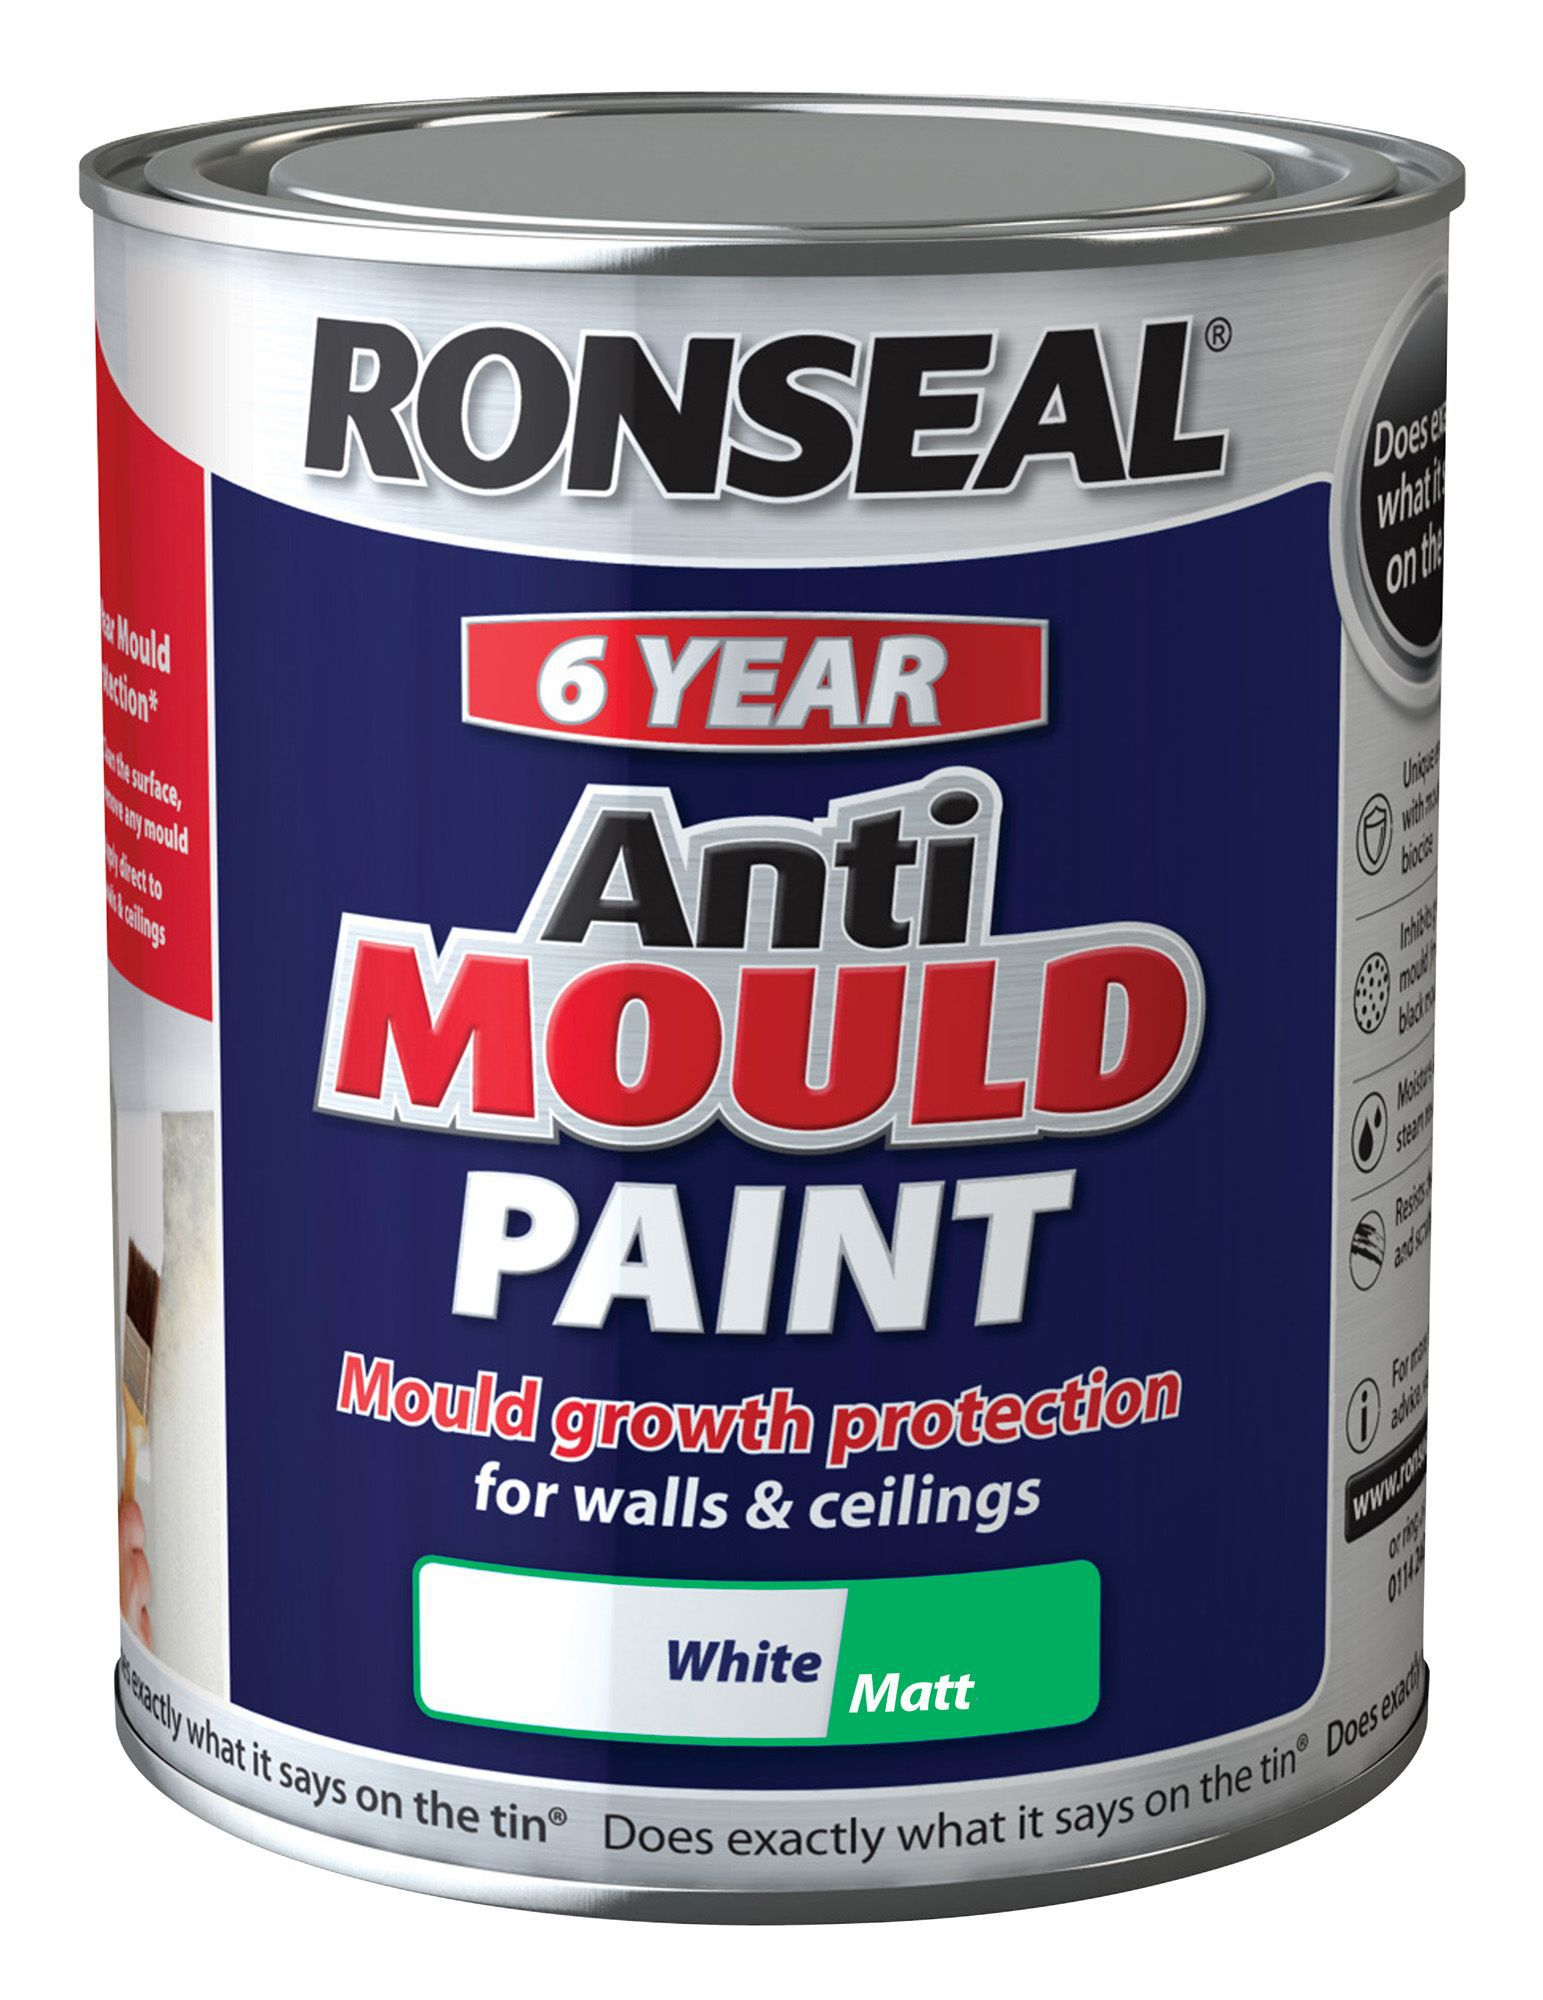 Ronseal Problem Wall Paints White Matt Anti-mould Paint 750 Ml